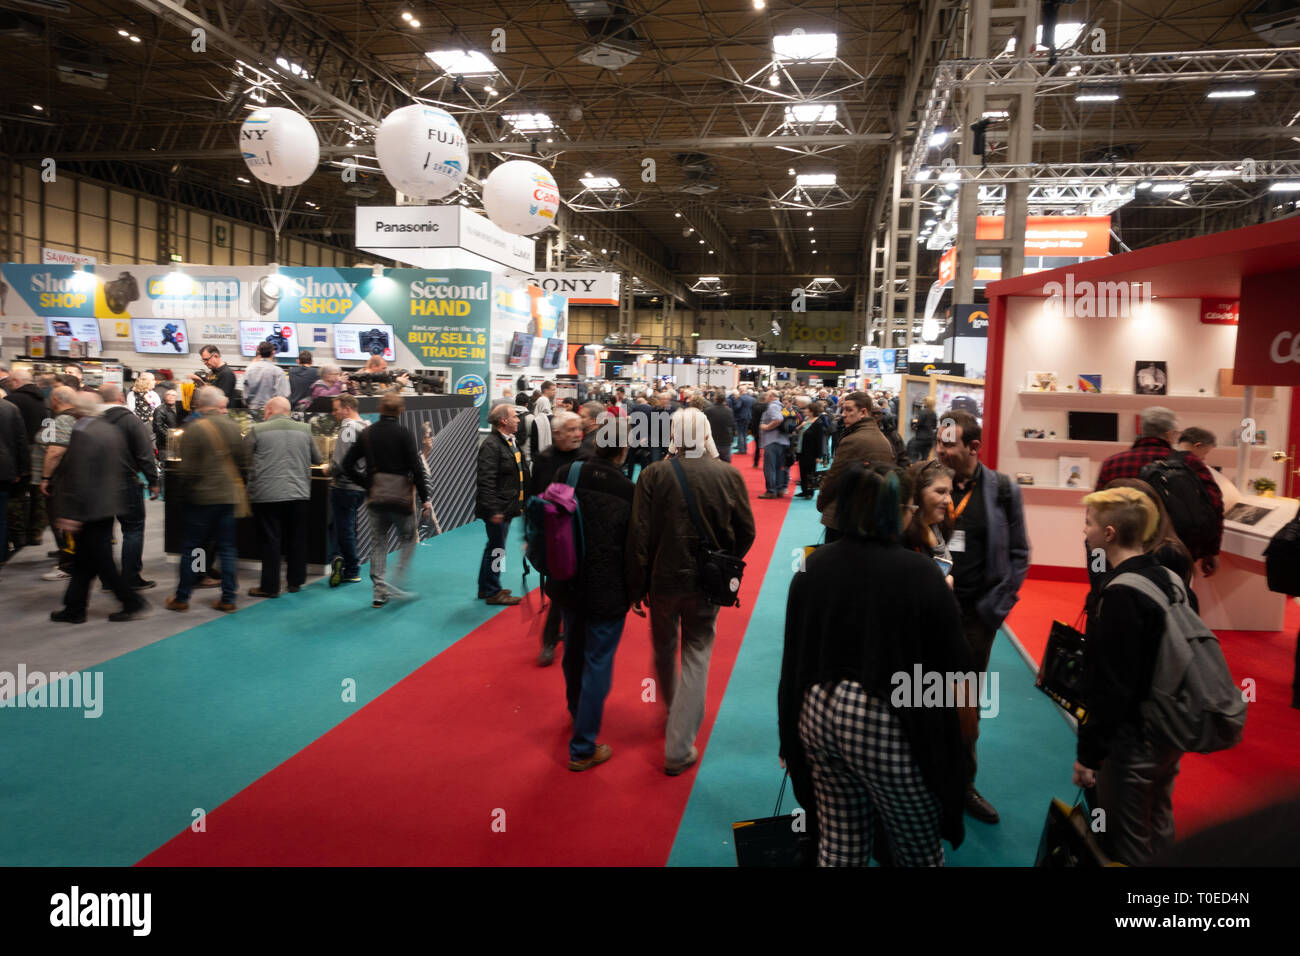 Photography Expo Stands : Exhibition stands stock photos & exhibition stands stock images alamy